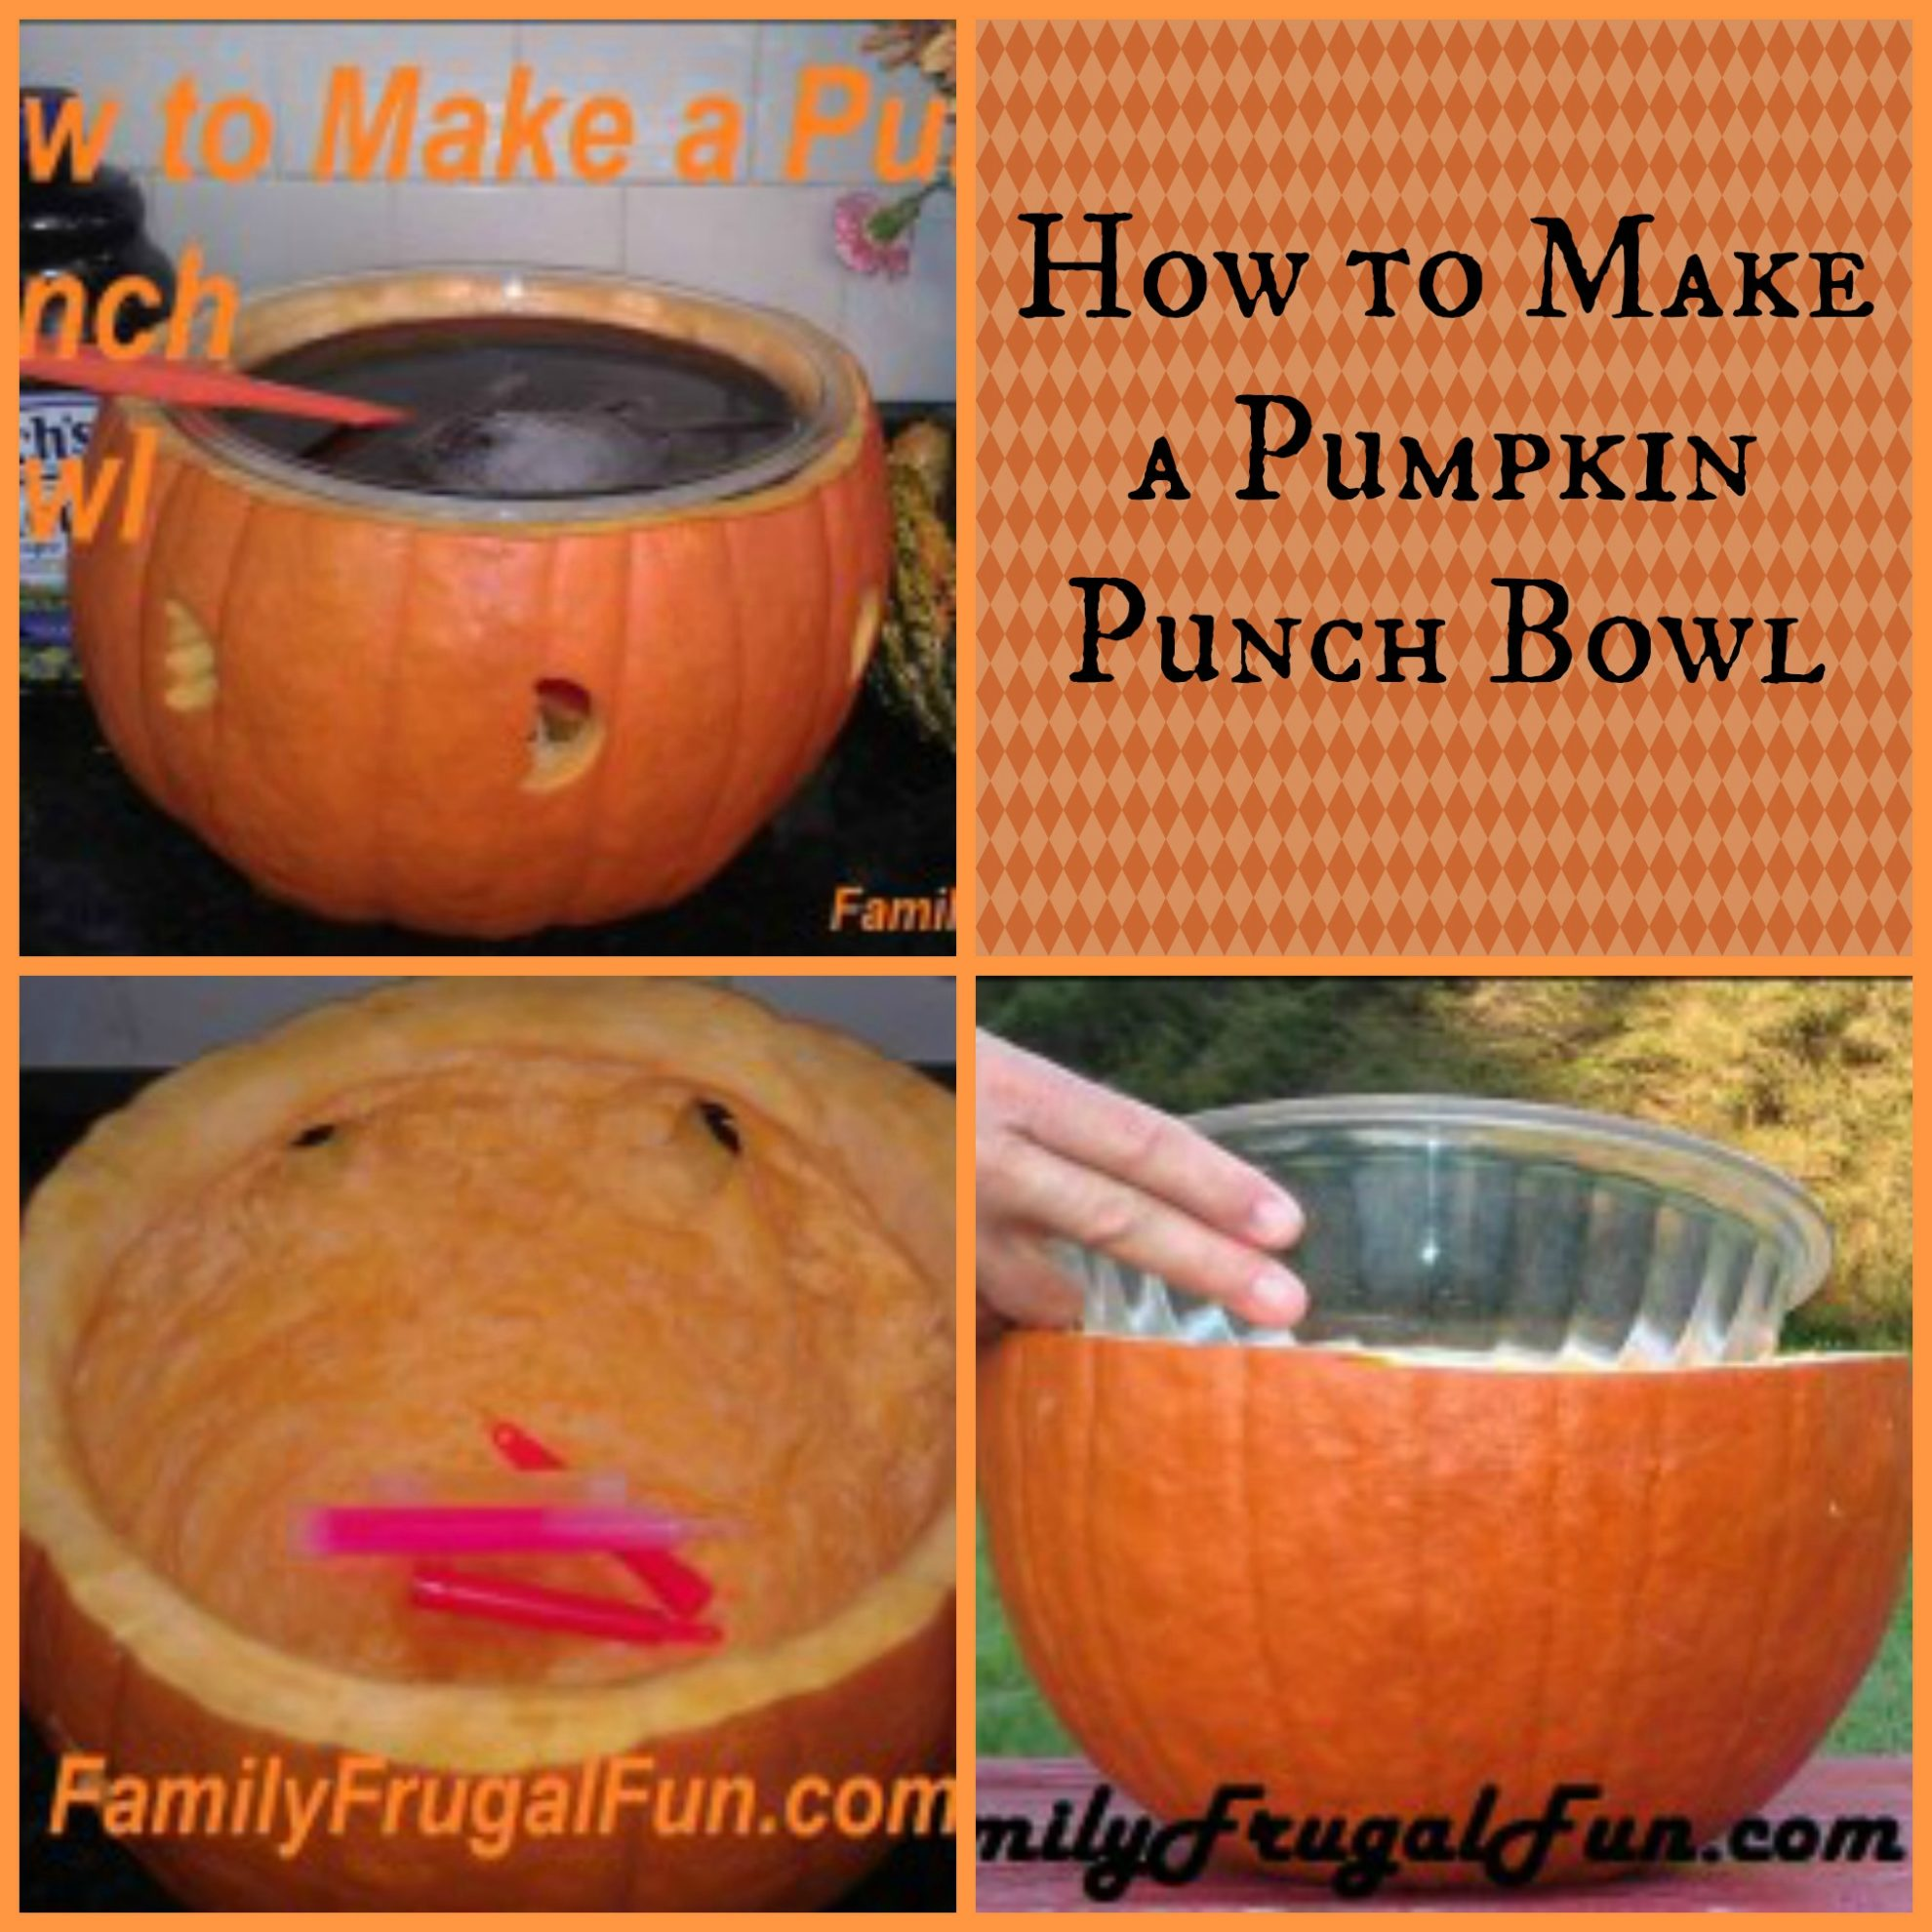 how to make a pumpkin punch bowl - Punch Recipes For Halloween